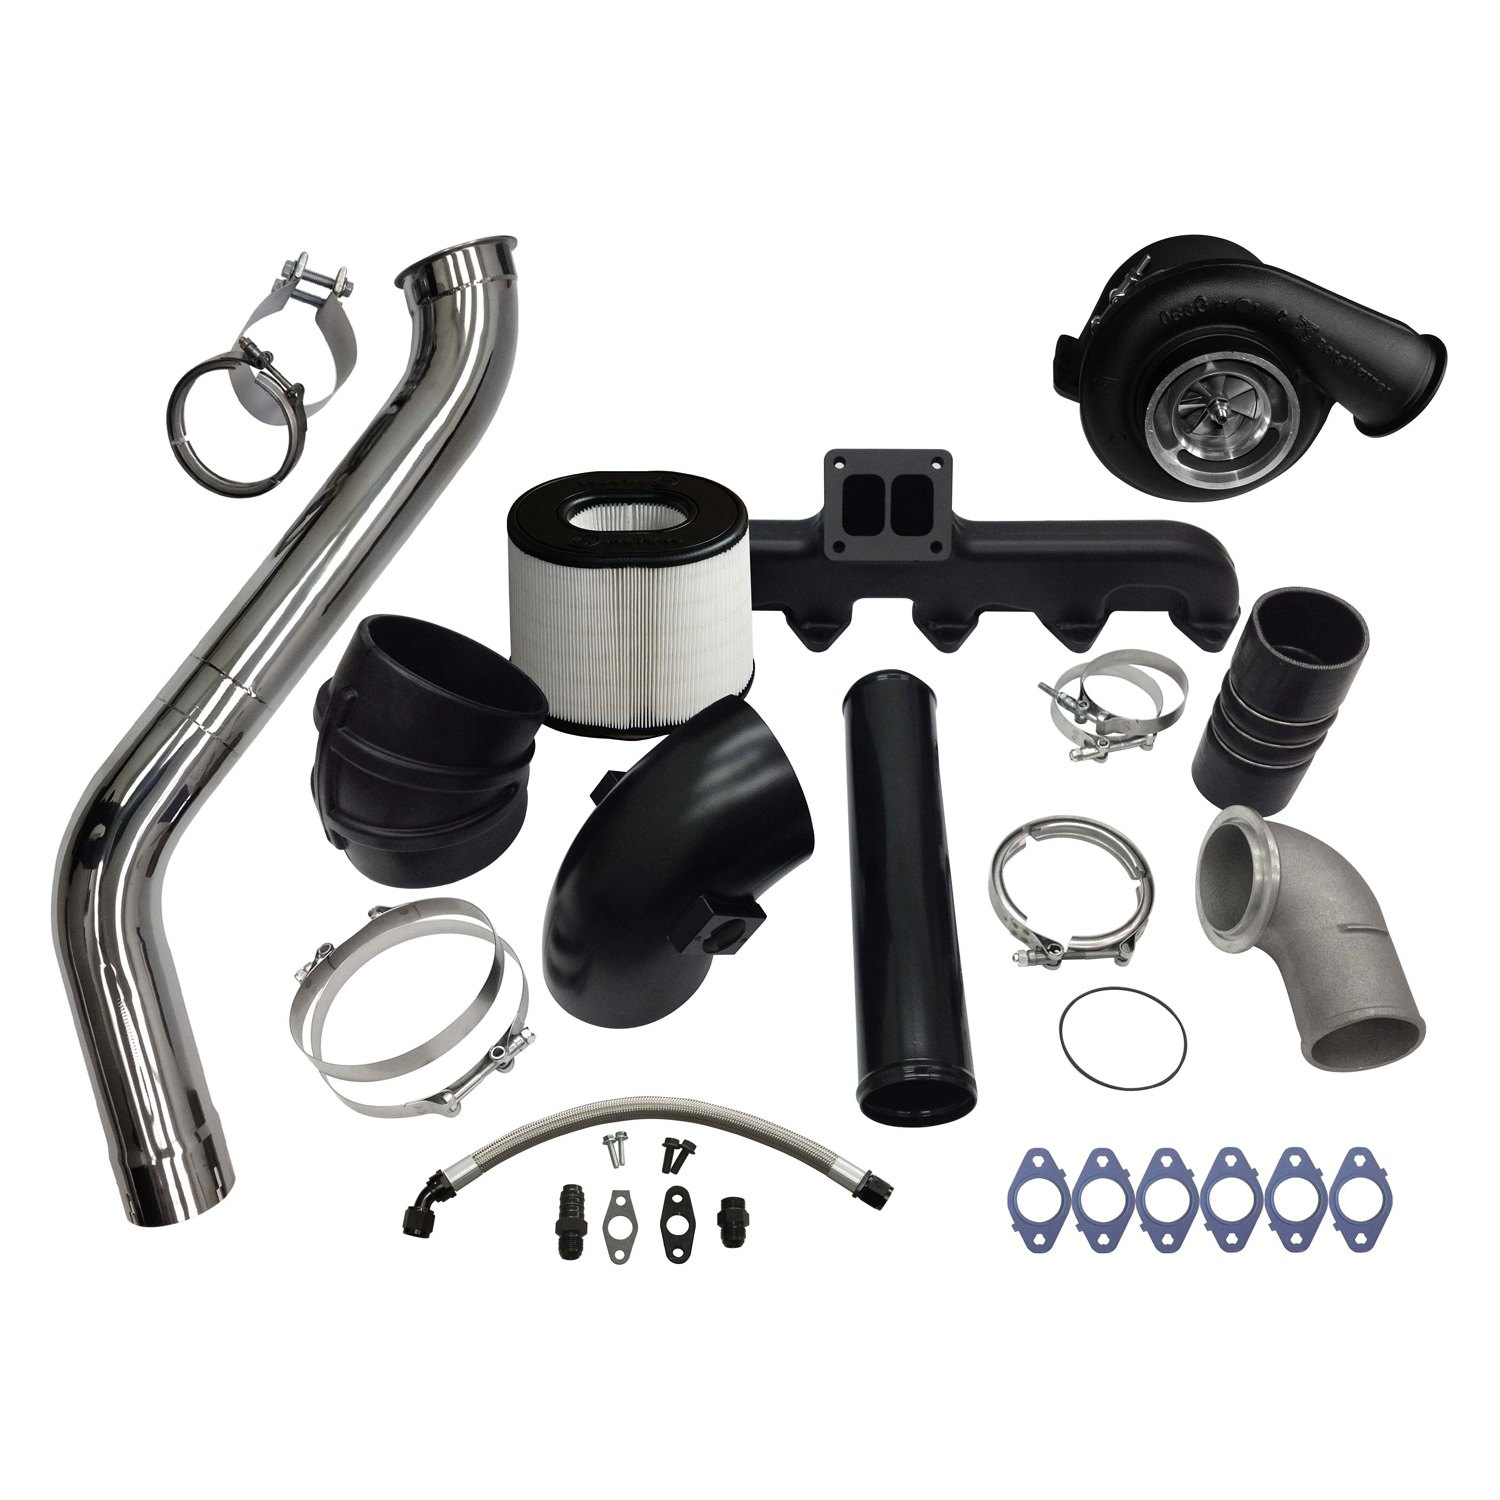 Fleece Performance 2nd Gen Swap Kit & Billet S471 Turbo for 3rd Gen 5.9L Cummins - Fleece Performance FPE-593-2G-71-CM